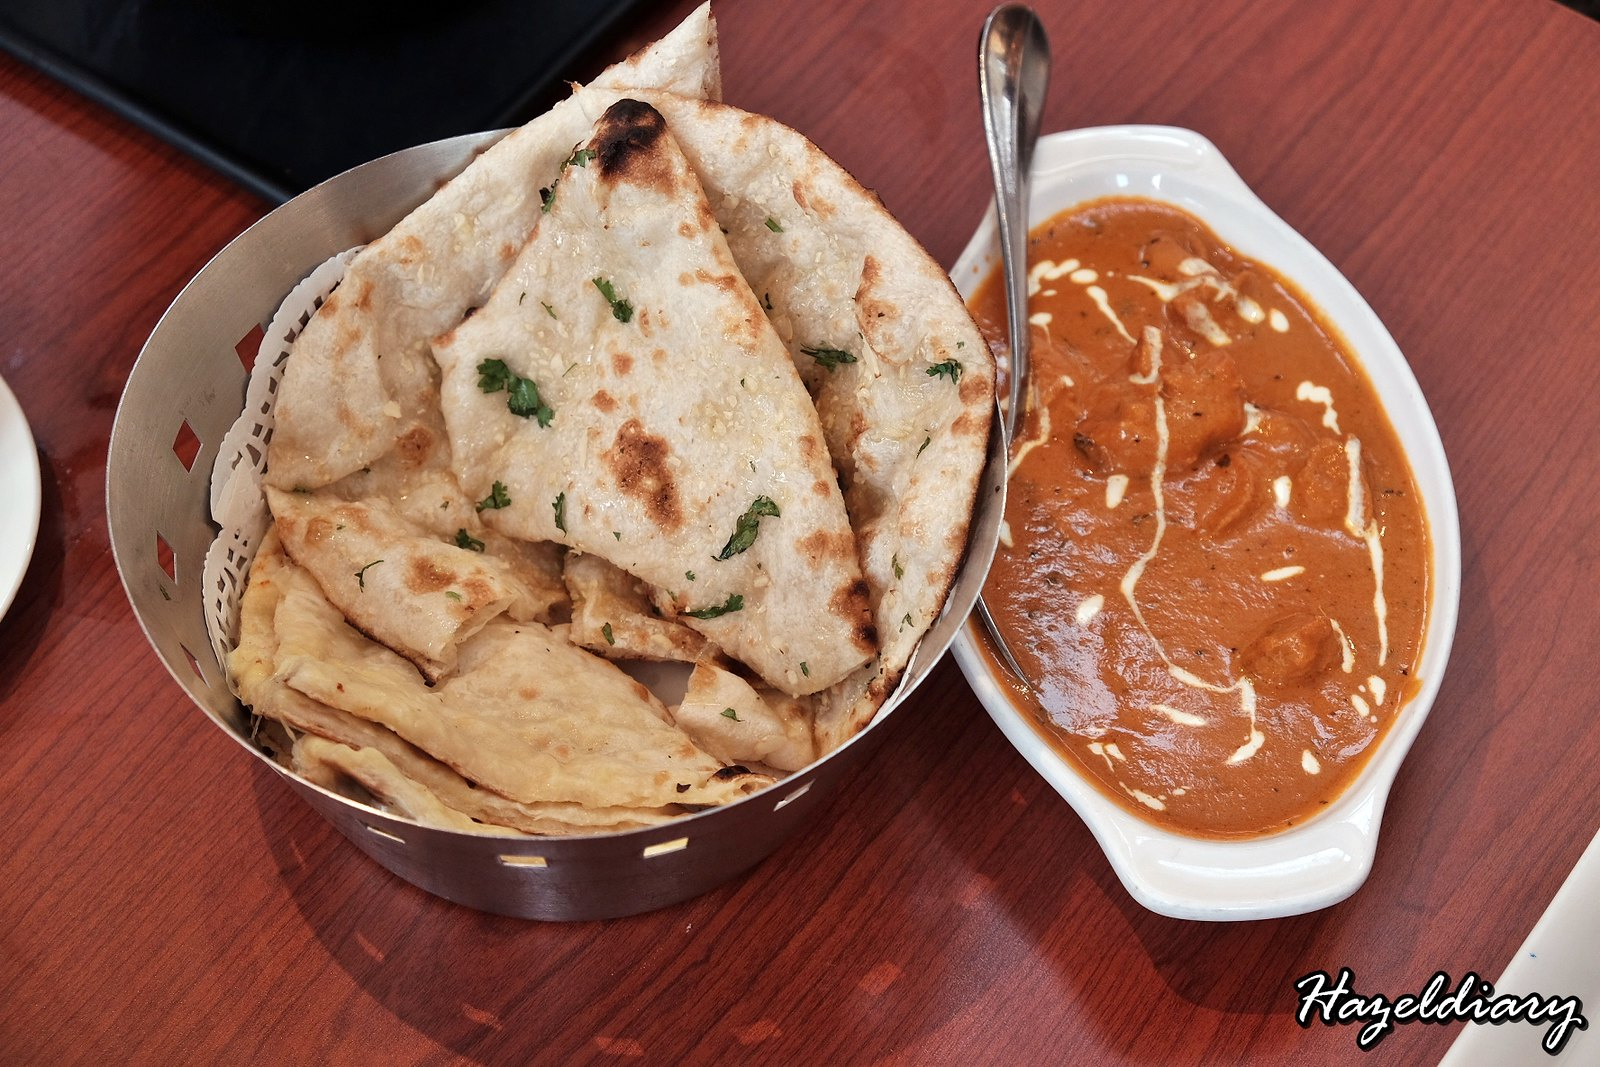 Pavilion Banana Leaf Restaurant-Indian Cuisine-Naan and Butter Chicken